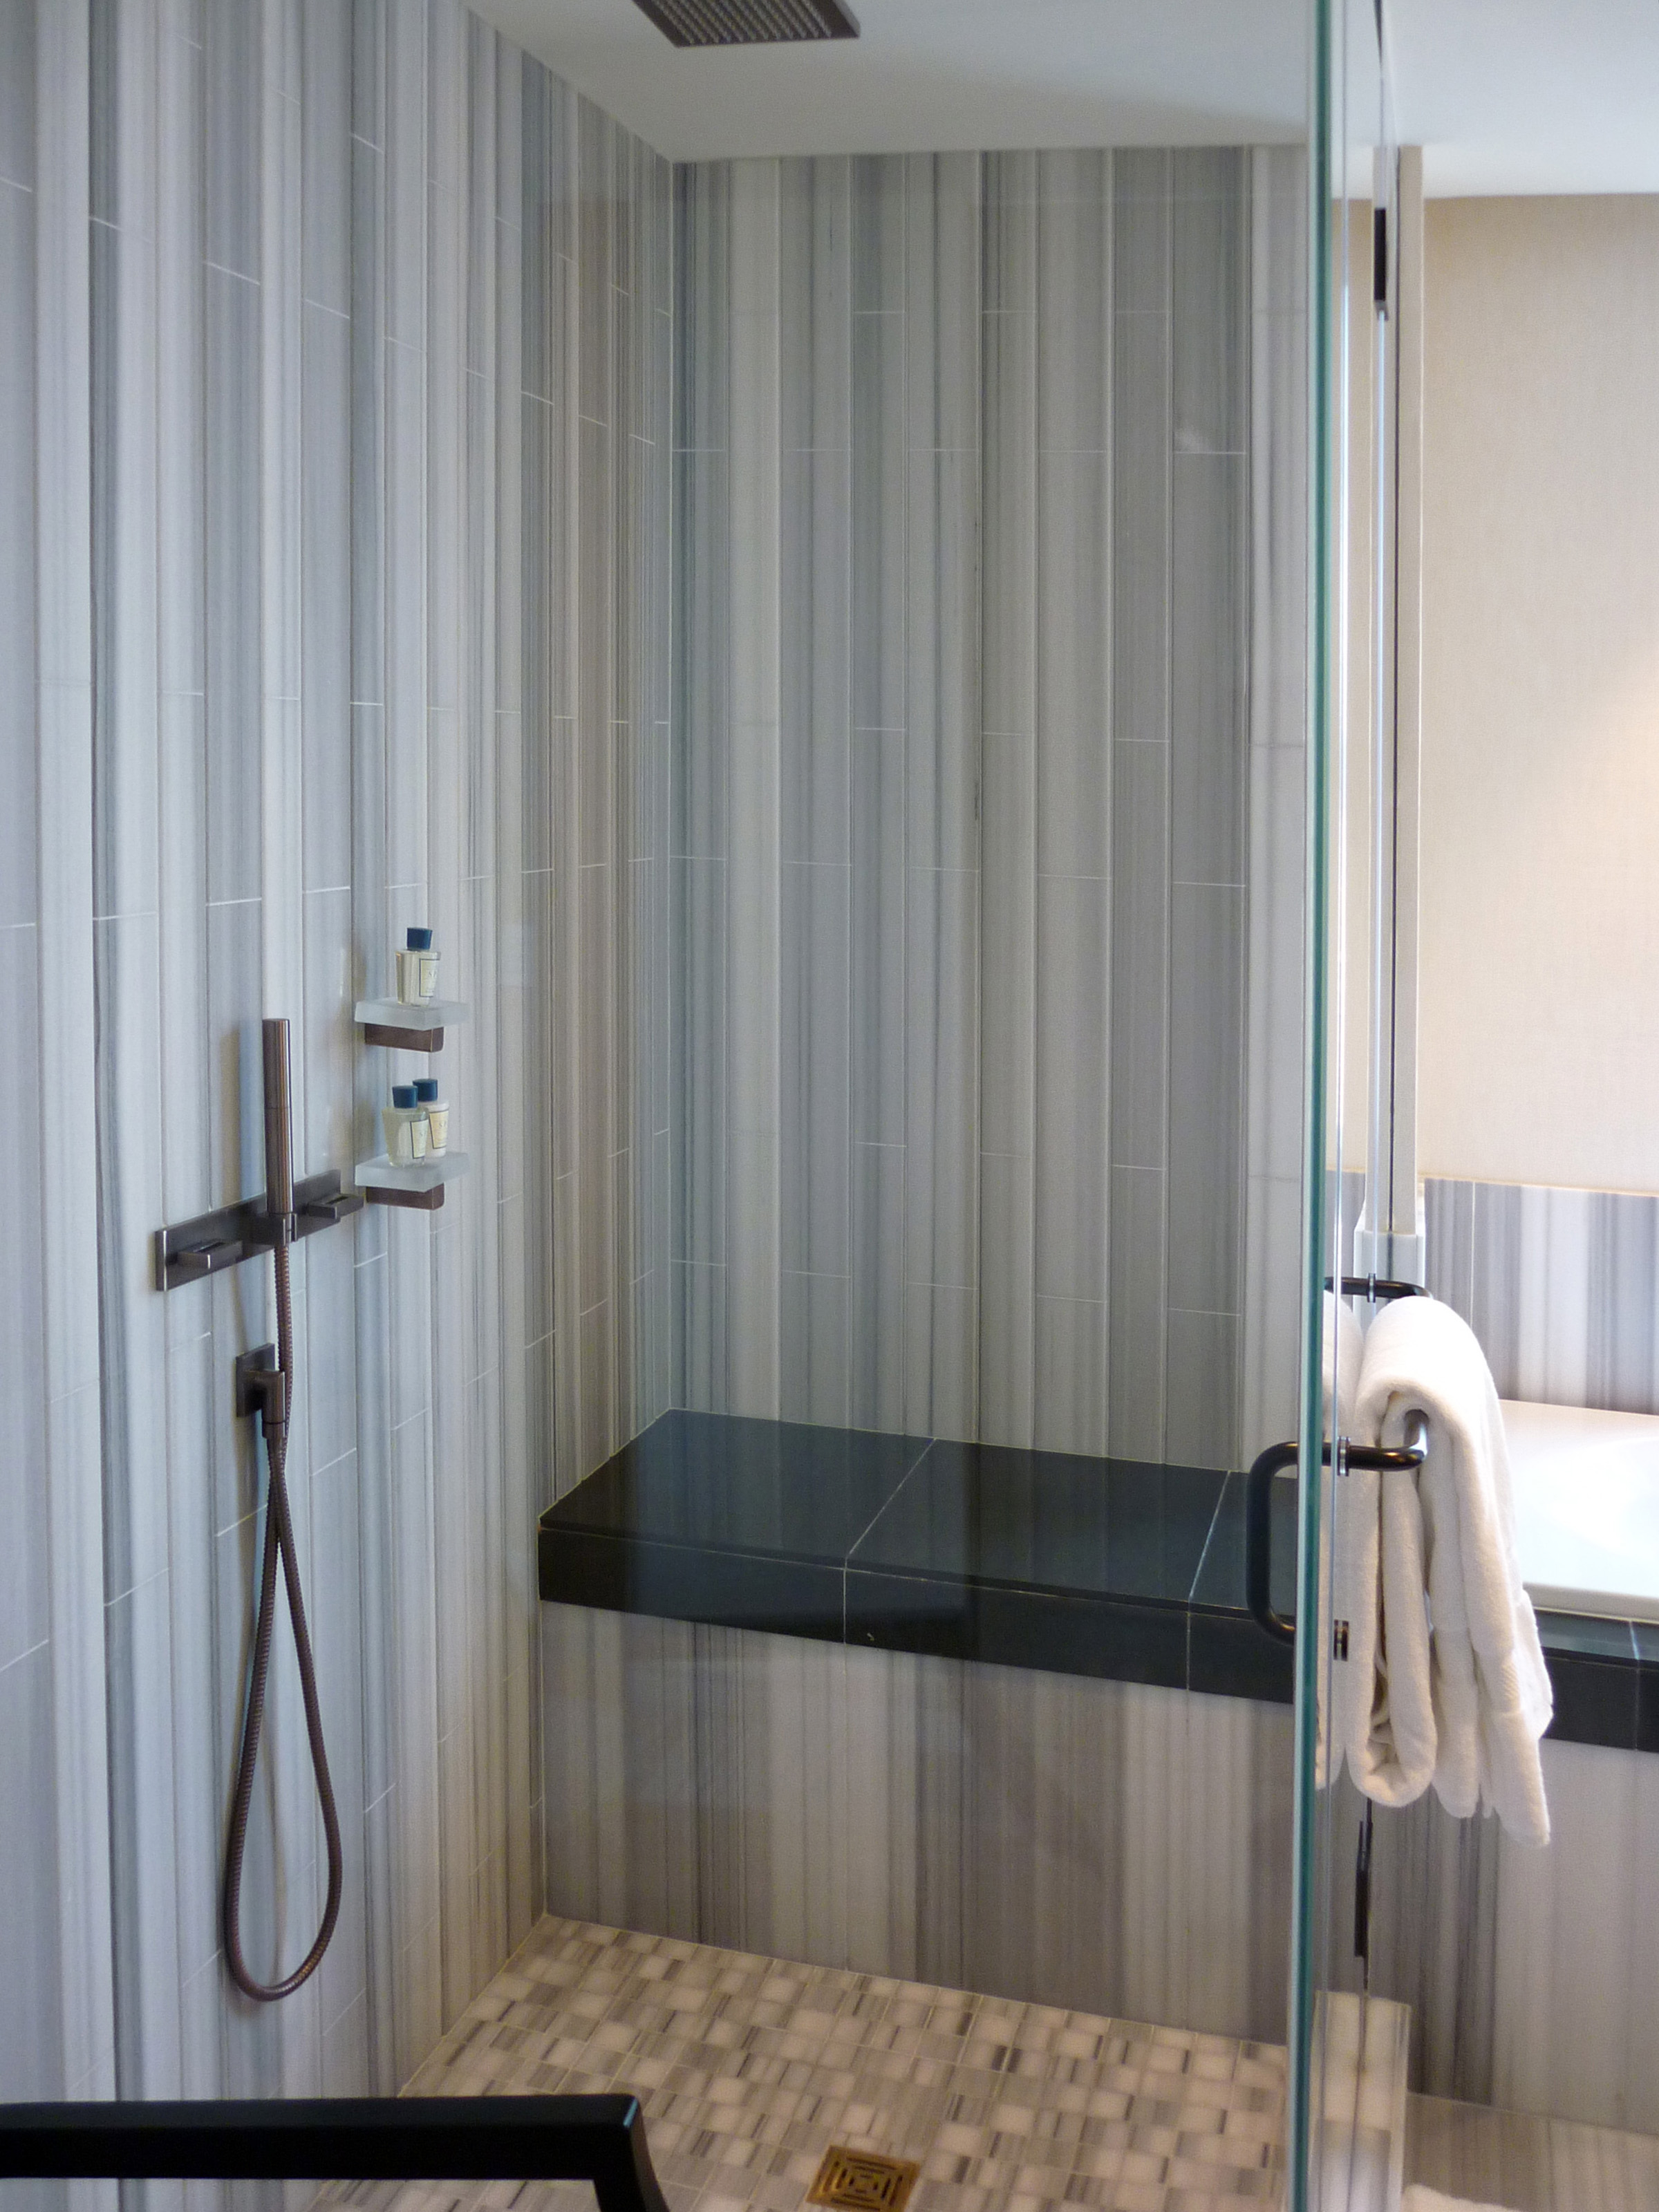 Free Stock Photo 6688 Modern shower cubicle | freeimageslive